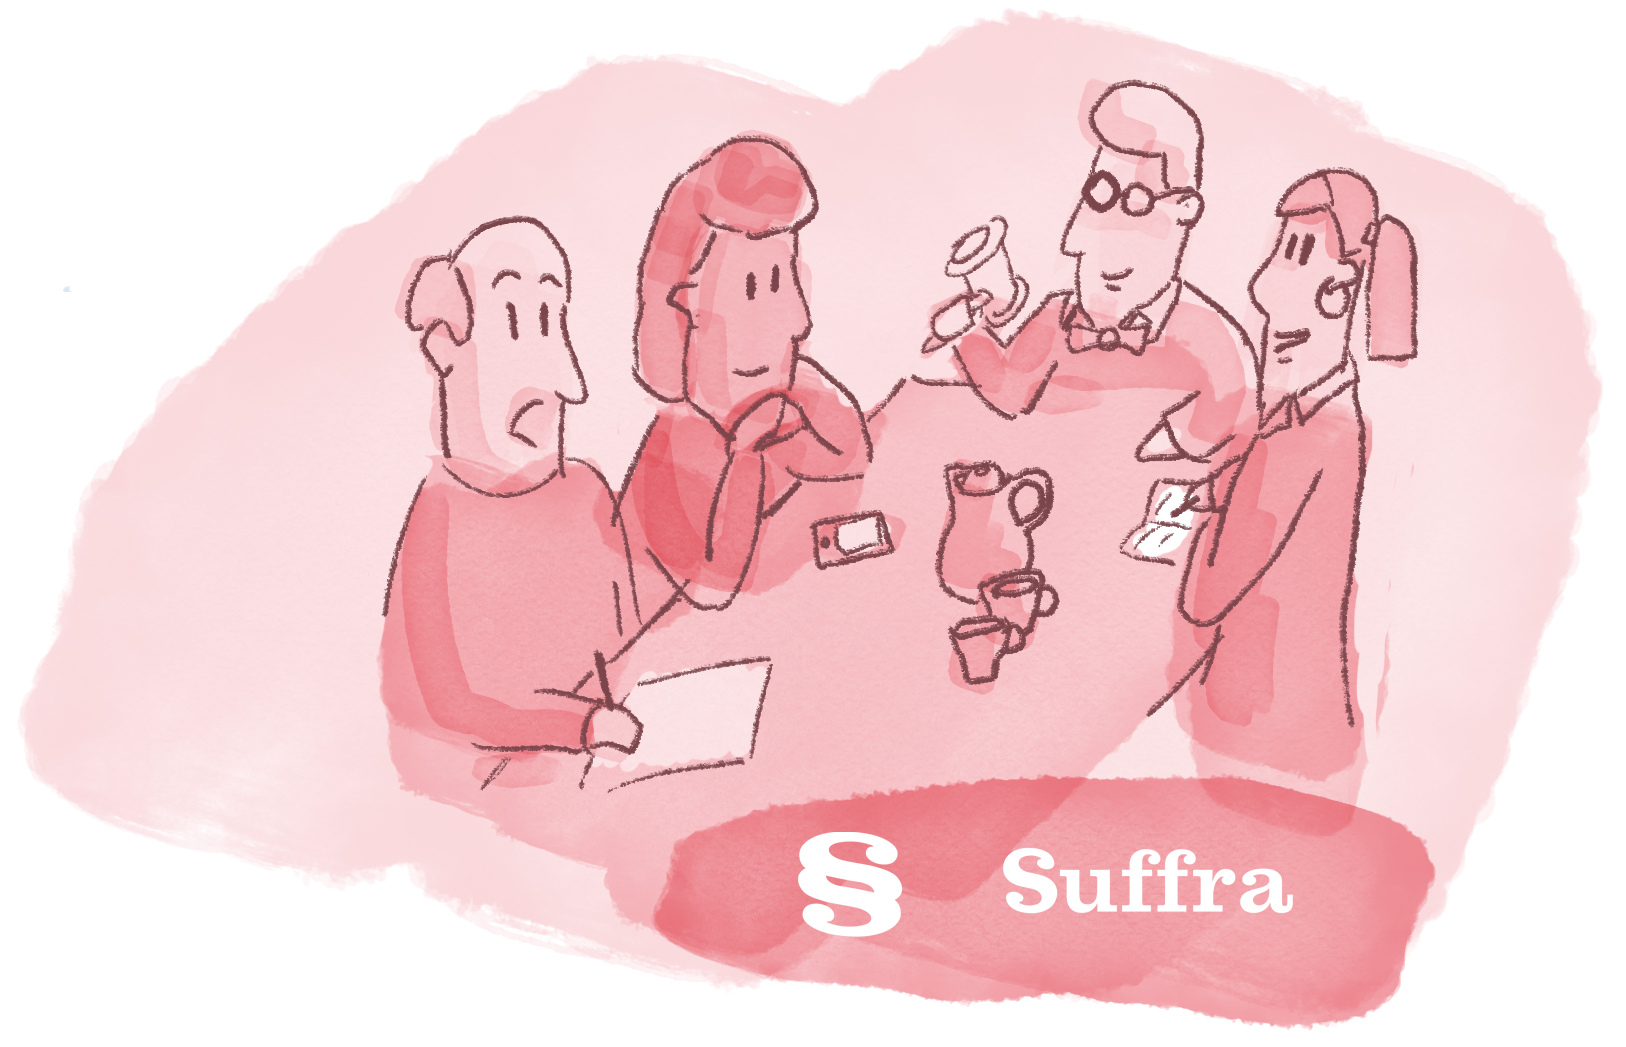 Suffra - Red Meeting Illustration